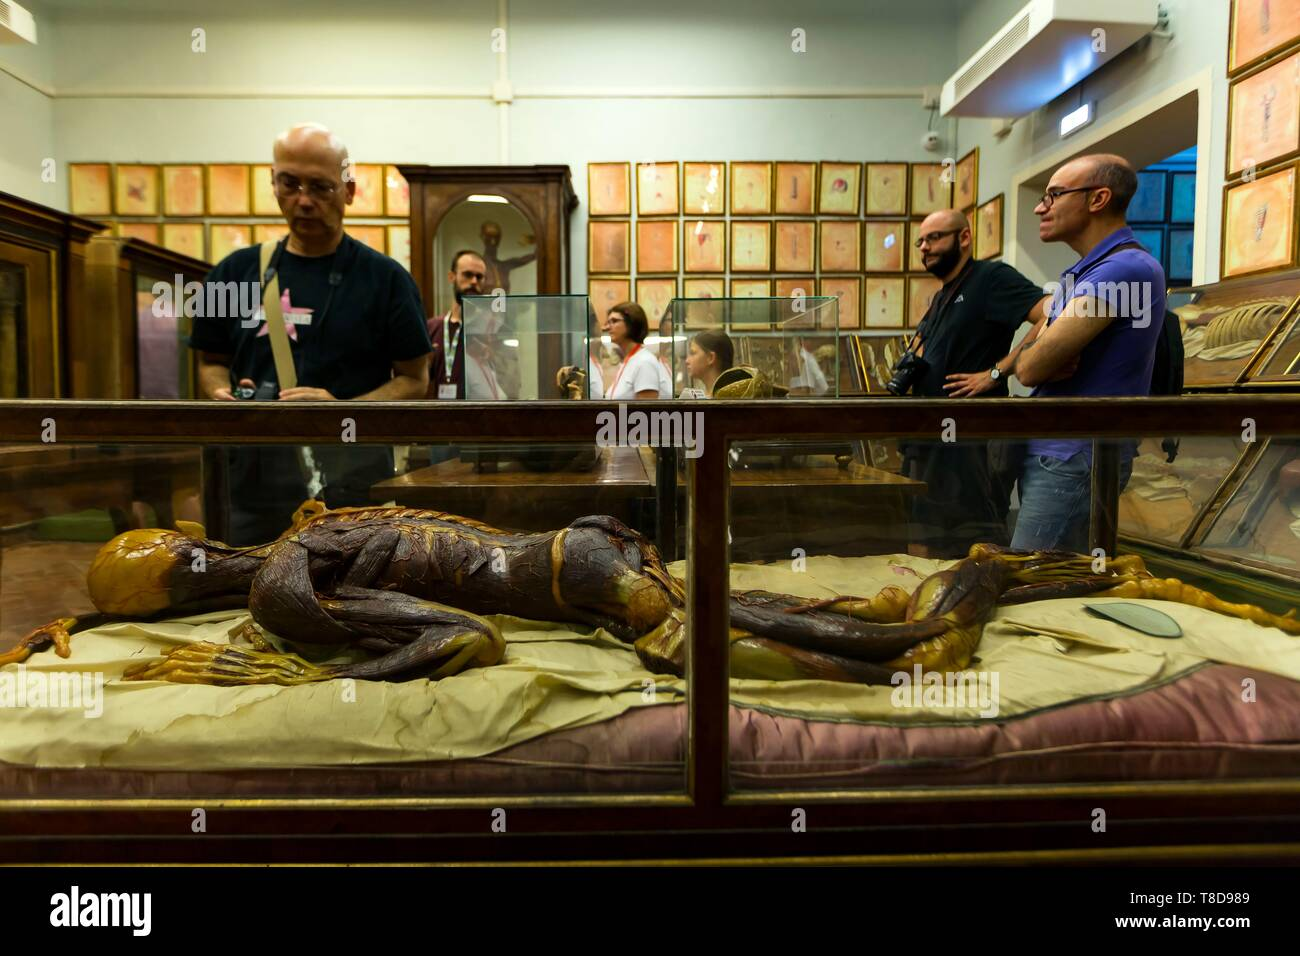 Italy, Tuscany, Florence, historic centre listed as World Heritage by UNESCO, the Museum of Specola at the Natural History Museum is the oldest scientific museum in Europe, known for its human anatomical waxes by Clemente Susini - Stock Image